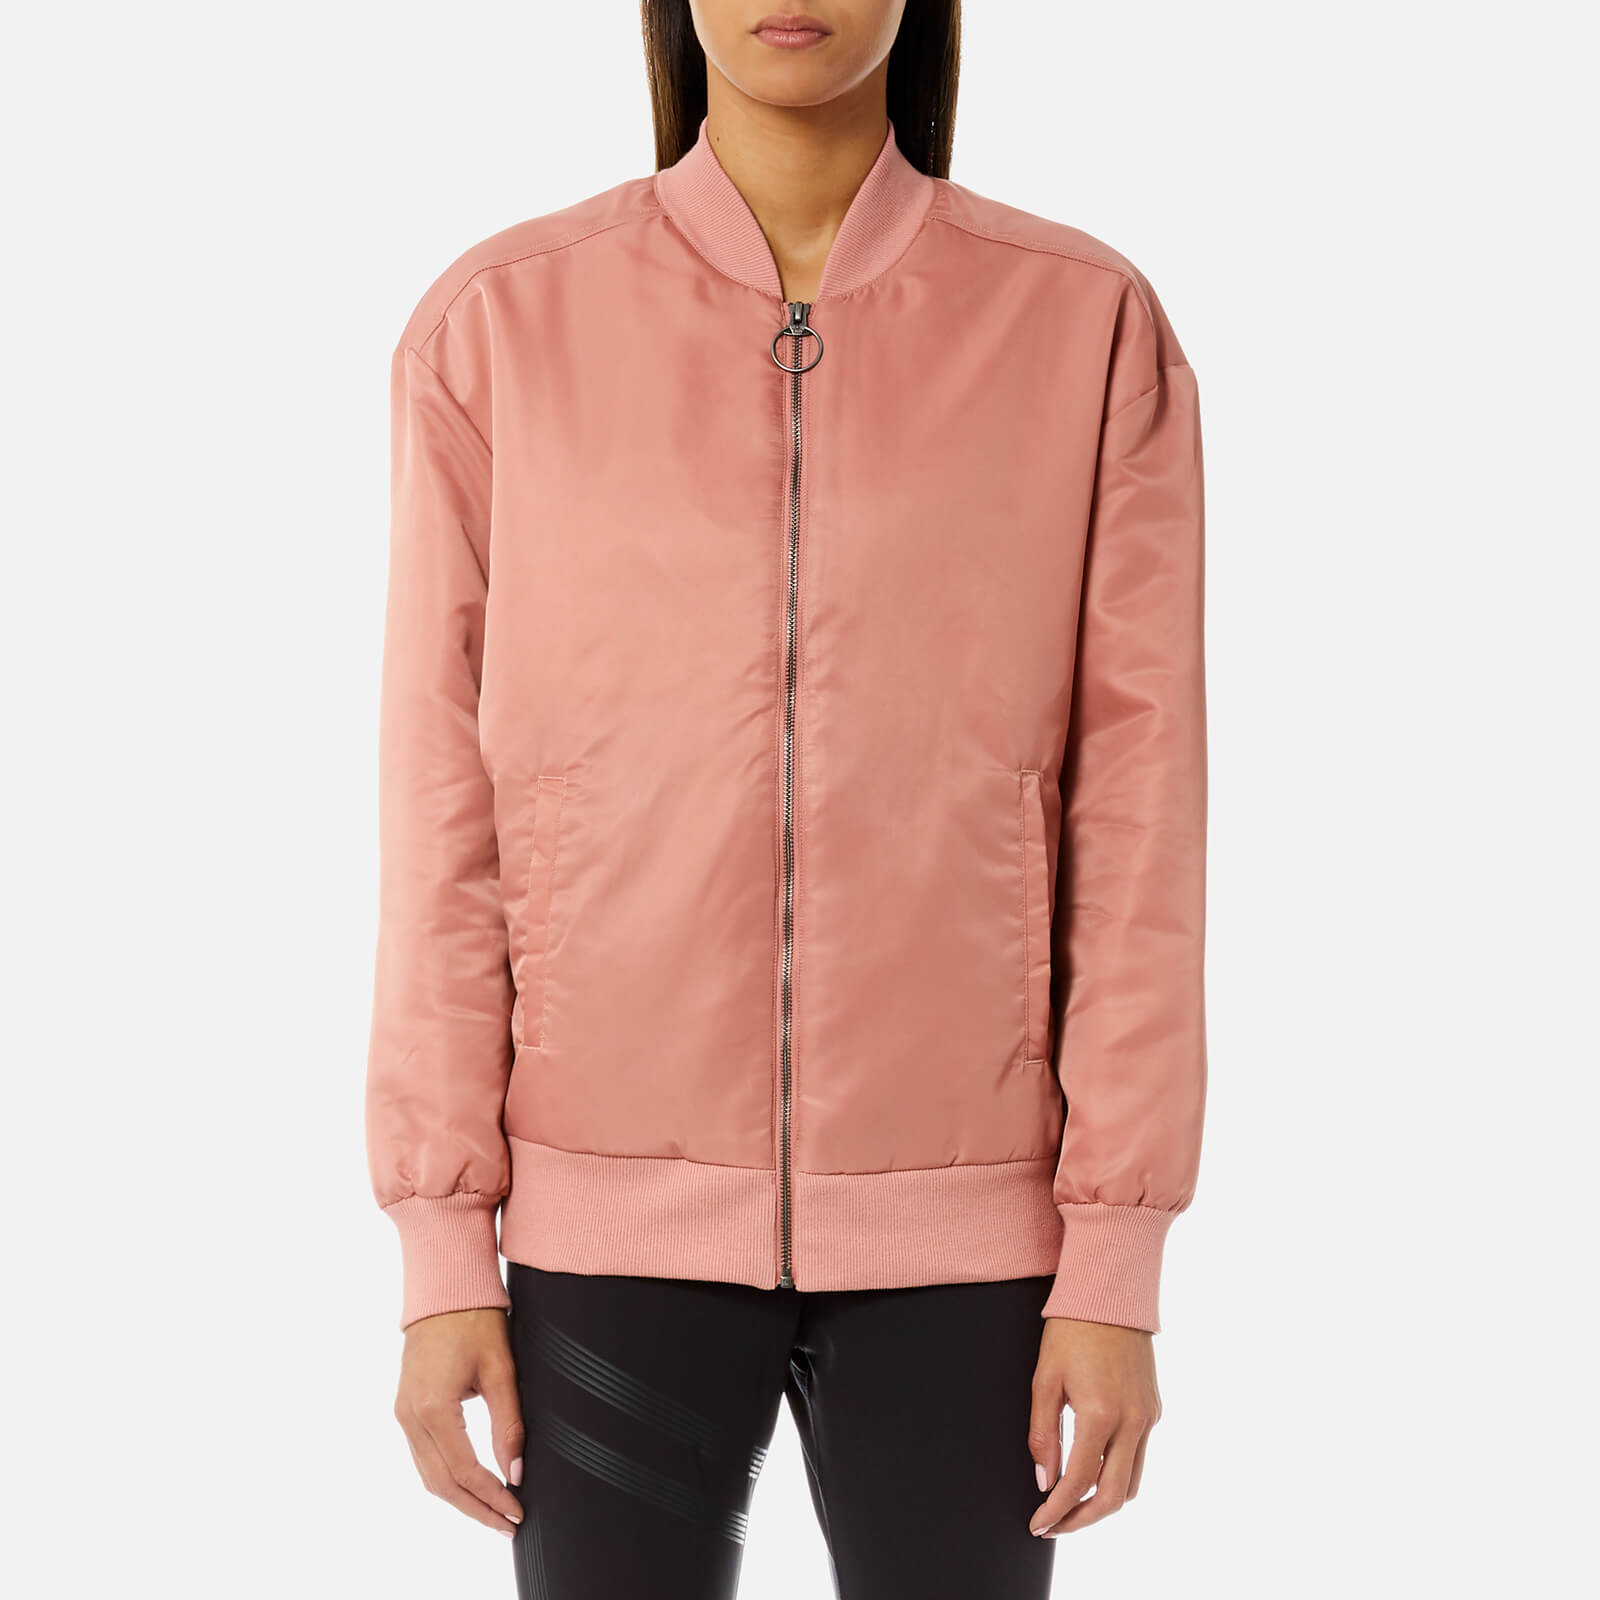 936f221b7 Reebok Women's Linear Bomber Jacket - Sandy Rose